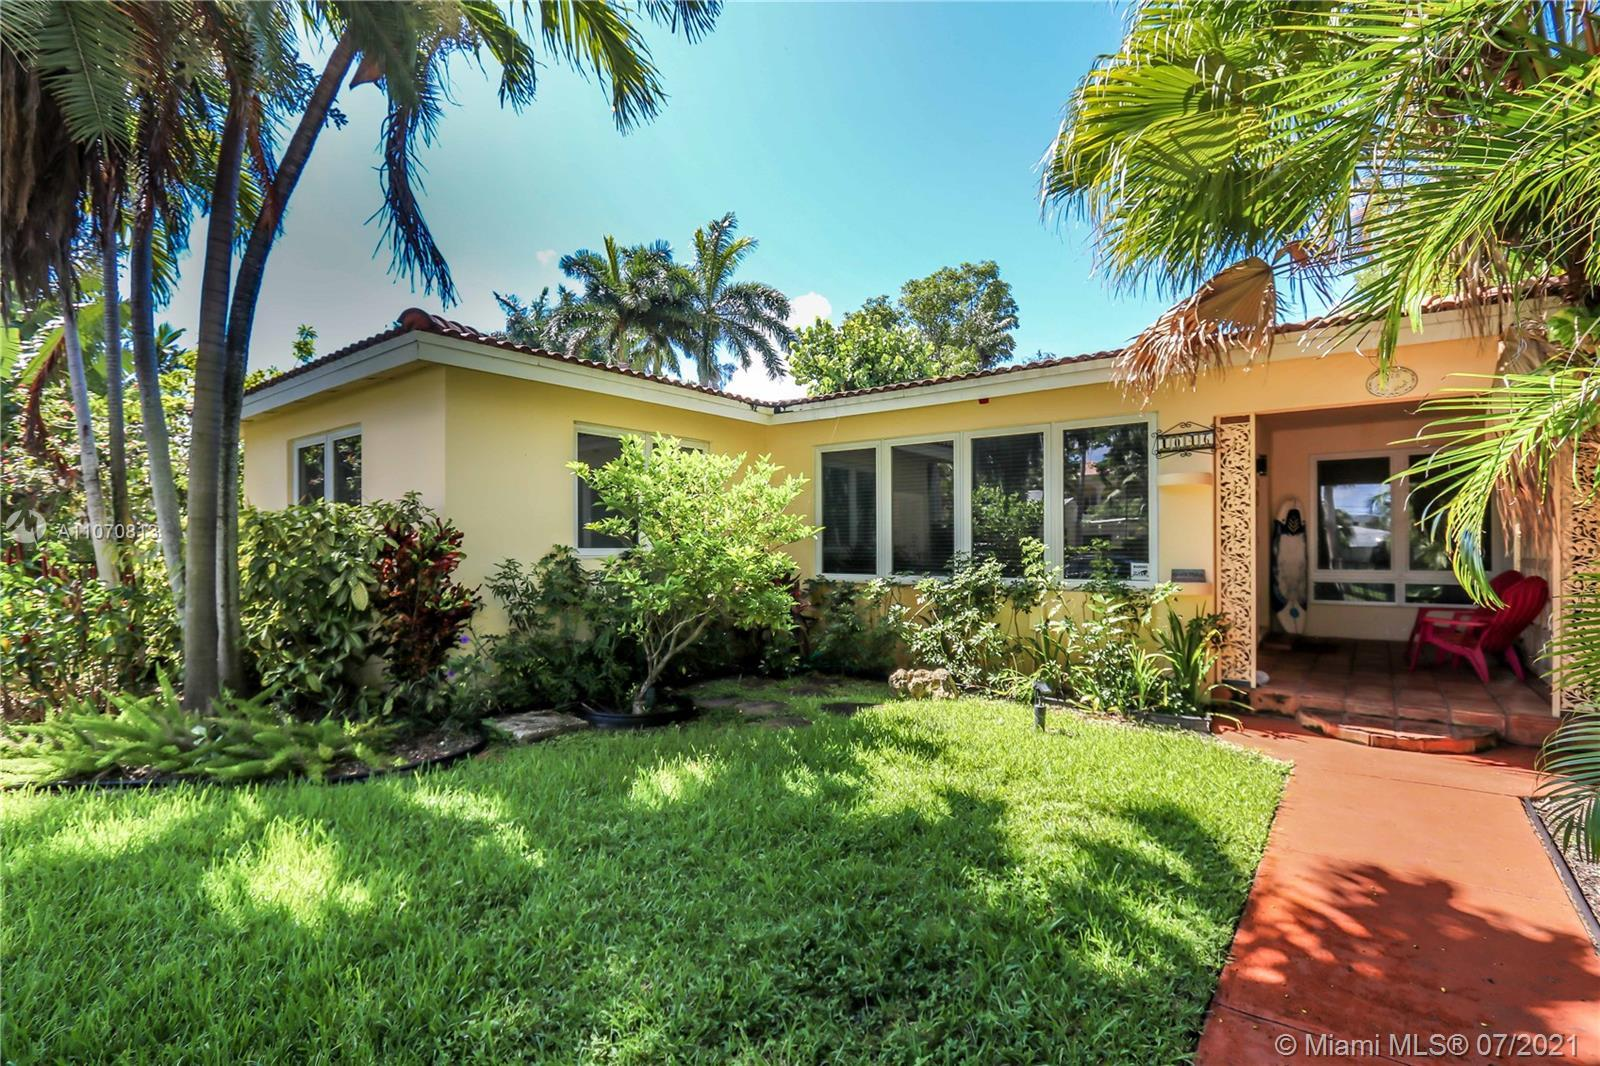 3BD/2BA PLUS DEN THAT CAN EASILY BE CONVERTED TO A 4TH BEDROOM IN BEAUTIFUL HOLLYWOOD LAKES AREA! TH